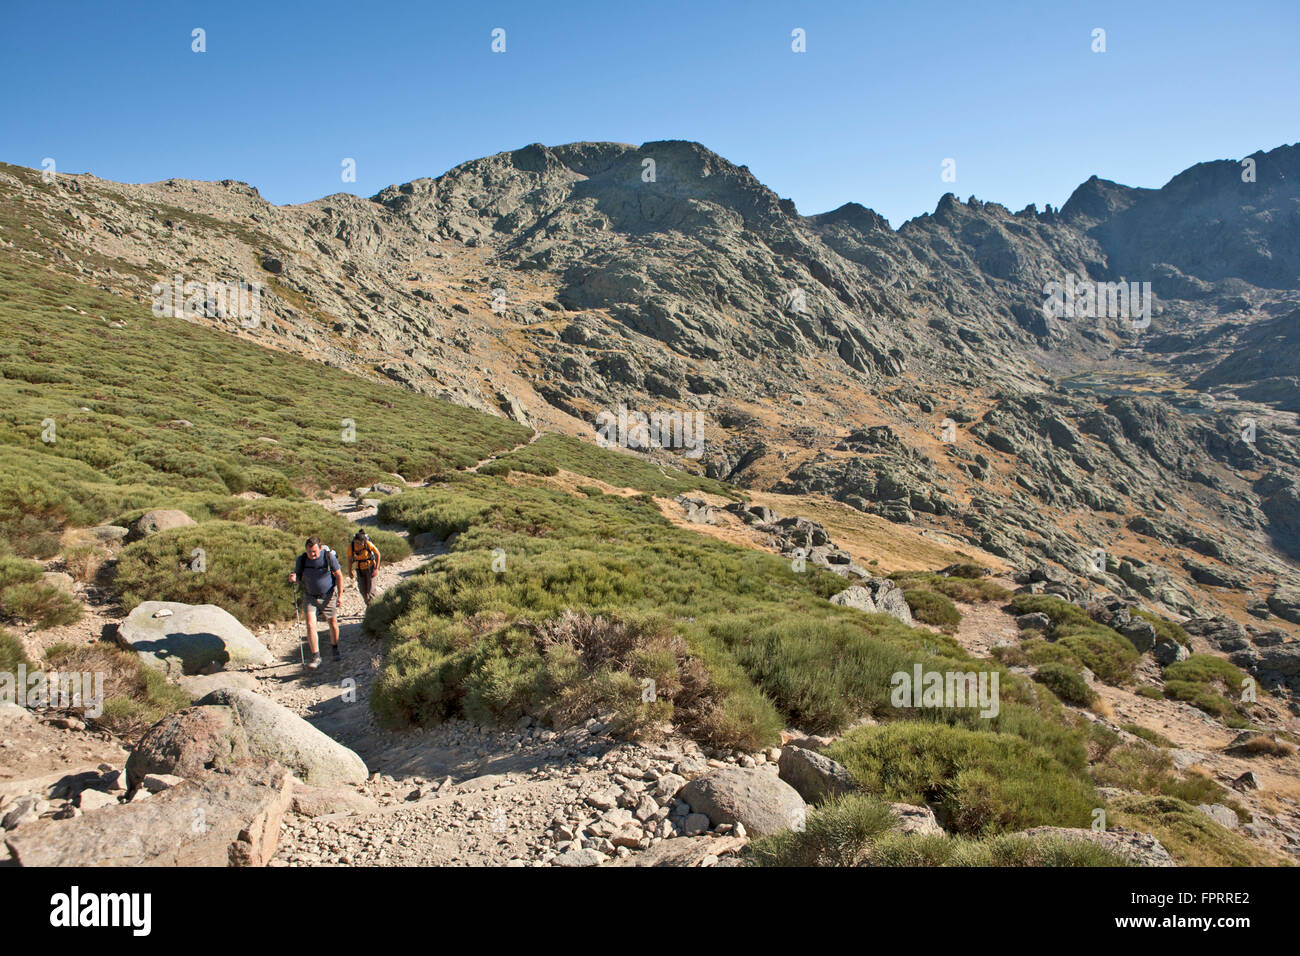 Europe, Spain, Castile-Leon, Sierra de Gredos, National park, hikers on a trail, rugged mountain view - Stock Image